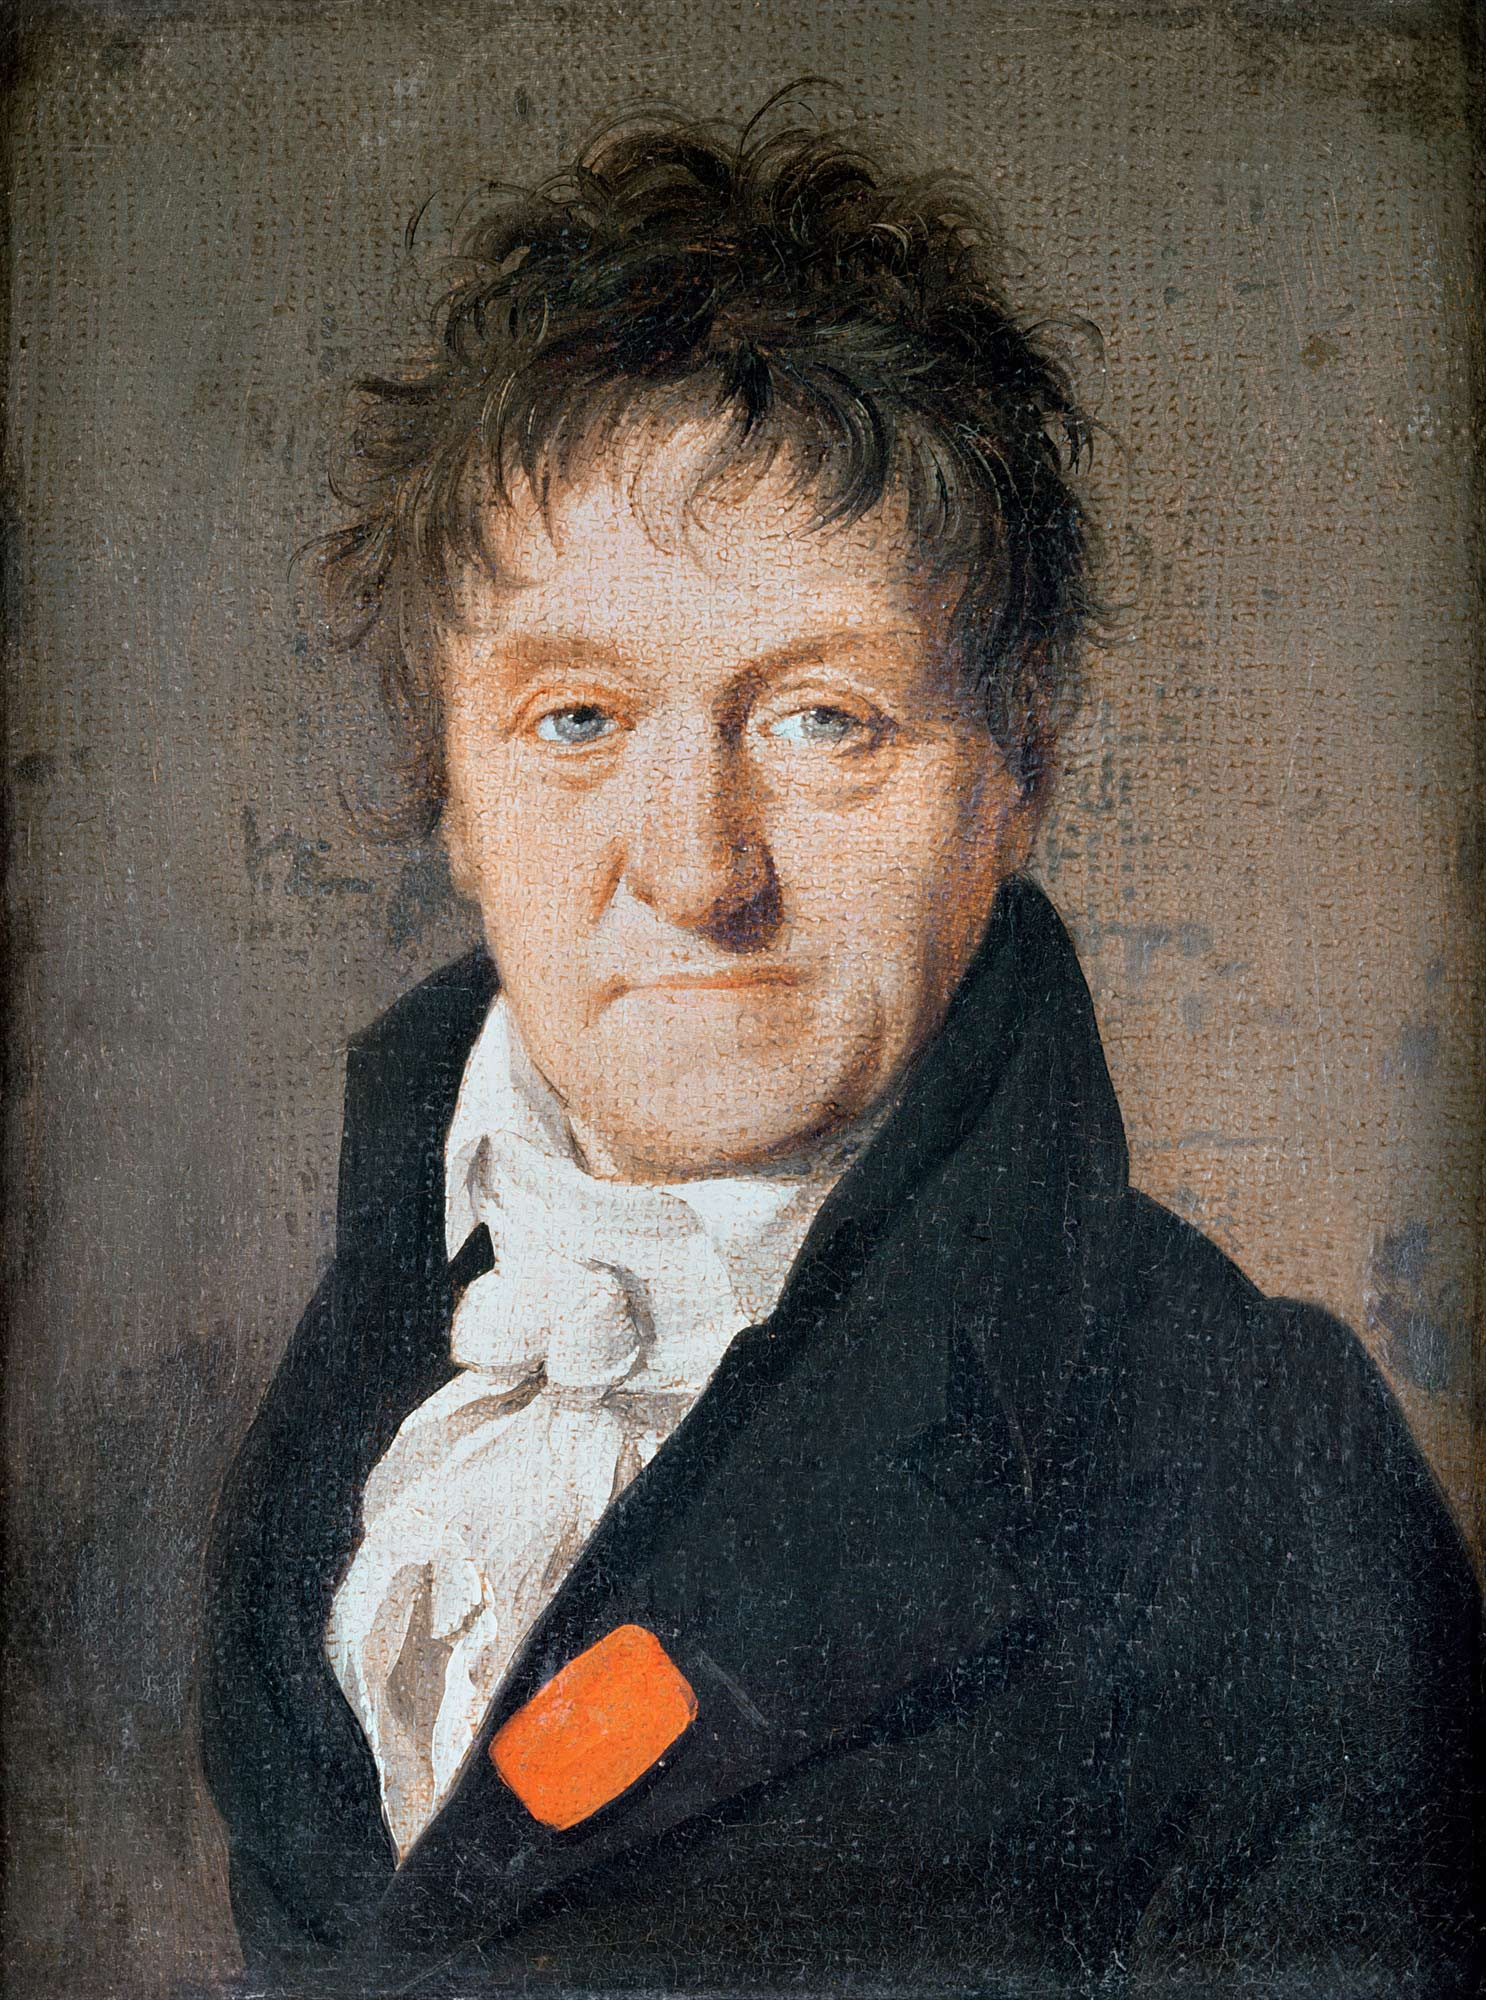 https://upload.wikimedia.org/wikipedia/commons/a/a4/Lazare-Carnot-par-Boilly.jpg